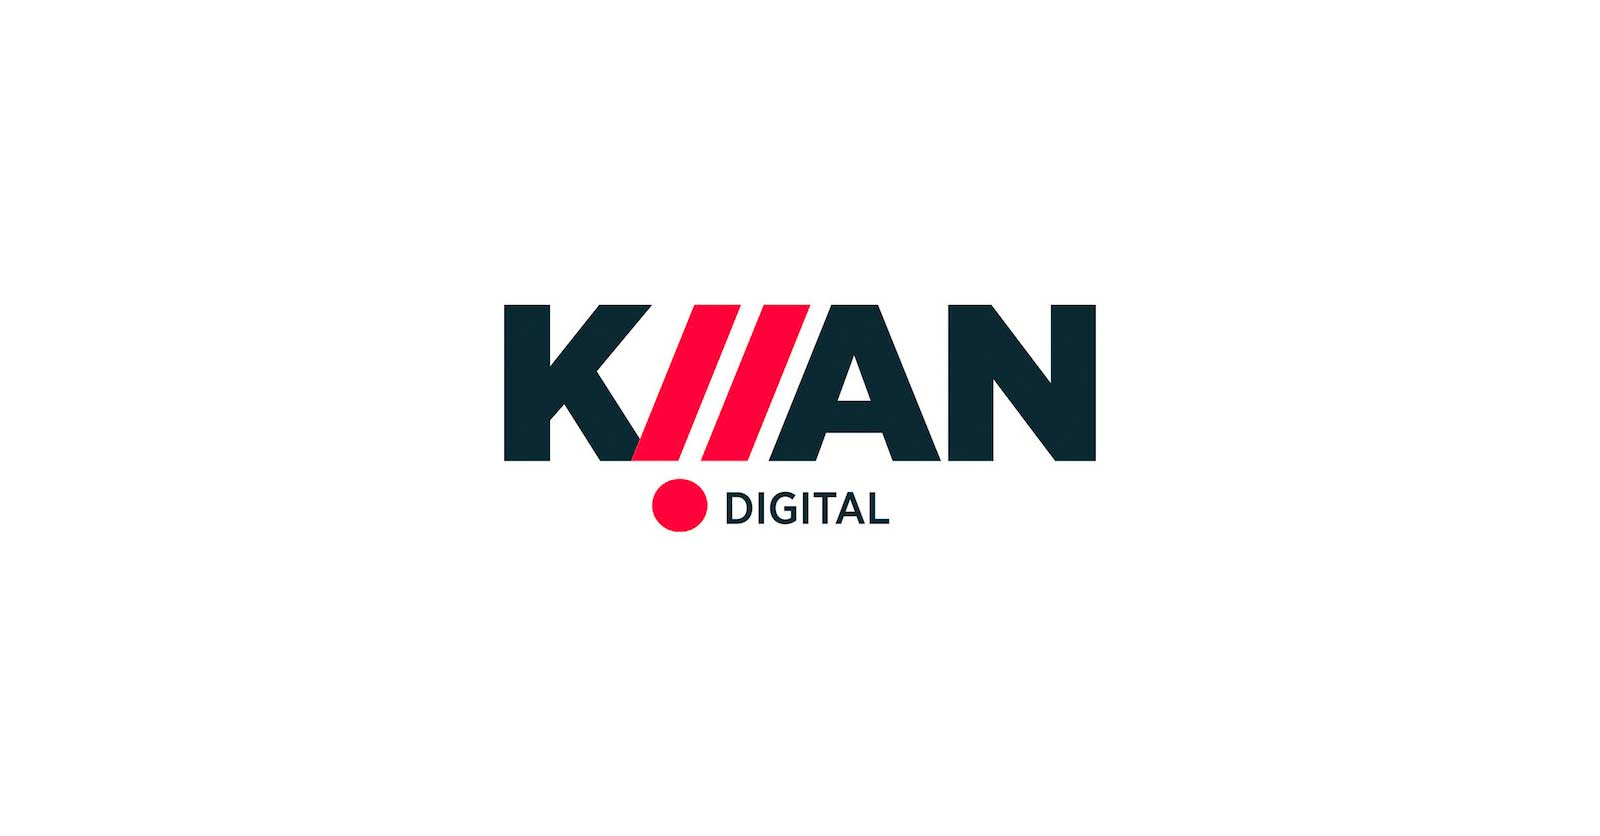 Kiian digital logo